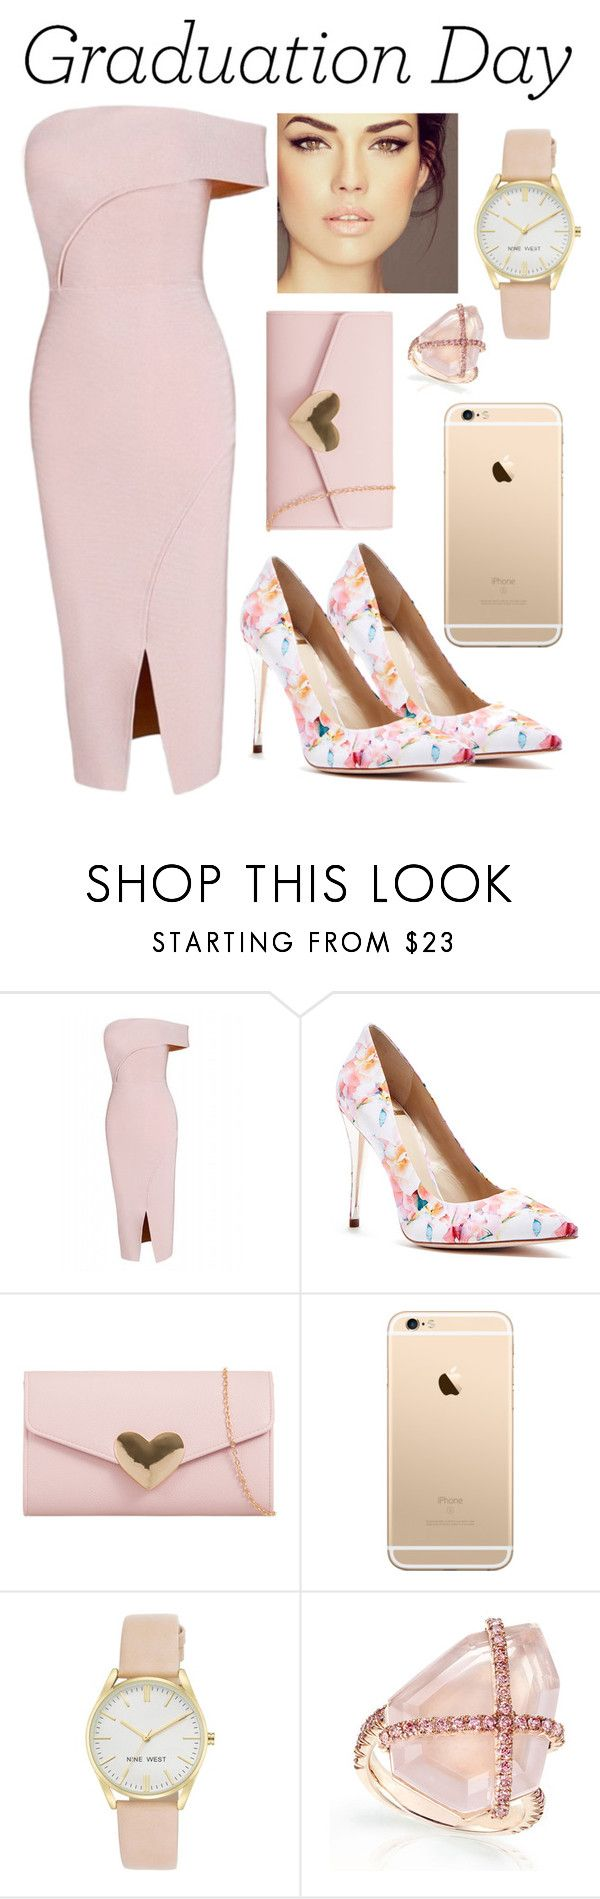 """Graduation Day "" by iamliksen ❤ liked on Polyvore featuring GUESS by Marciano, Nine West, Graduation and lovefashion"